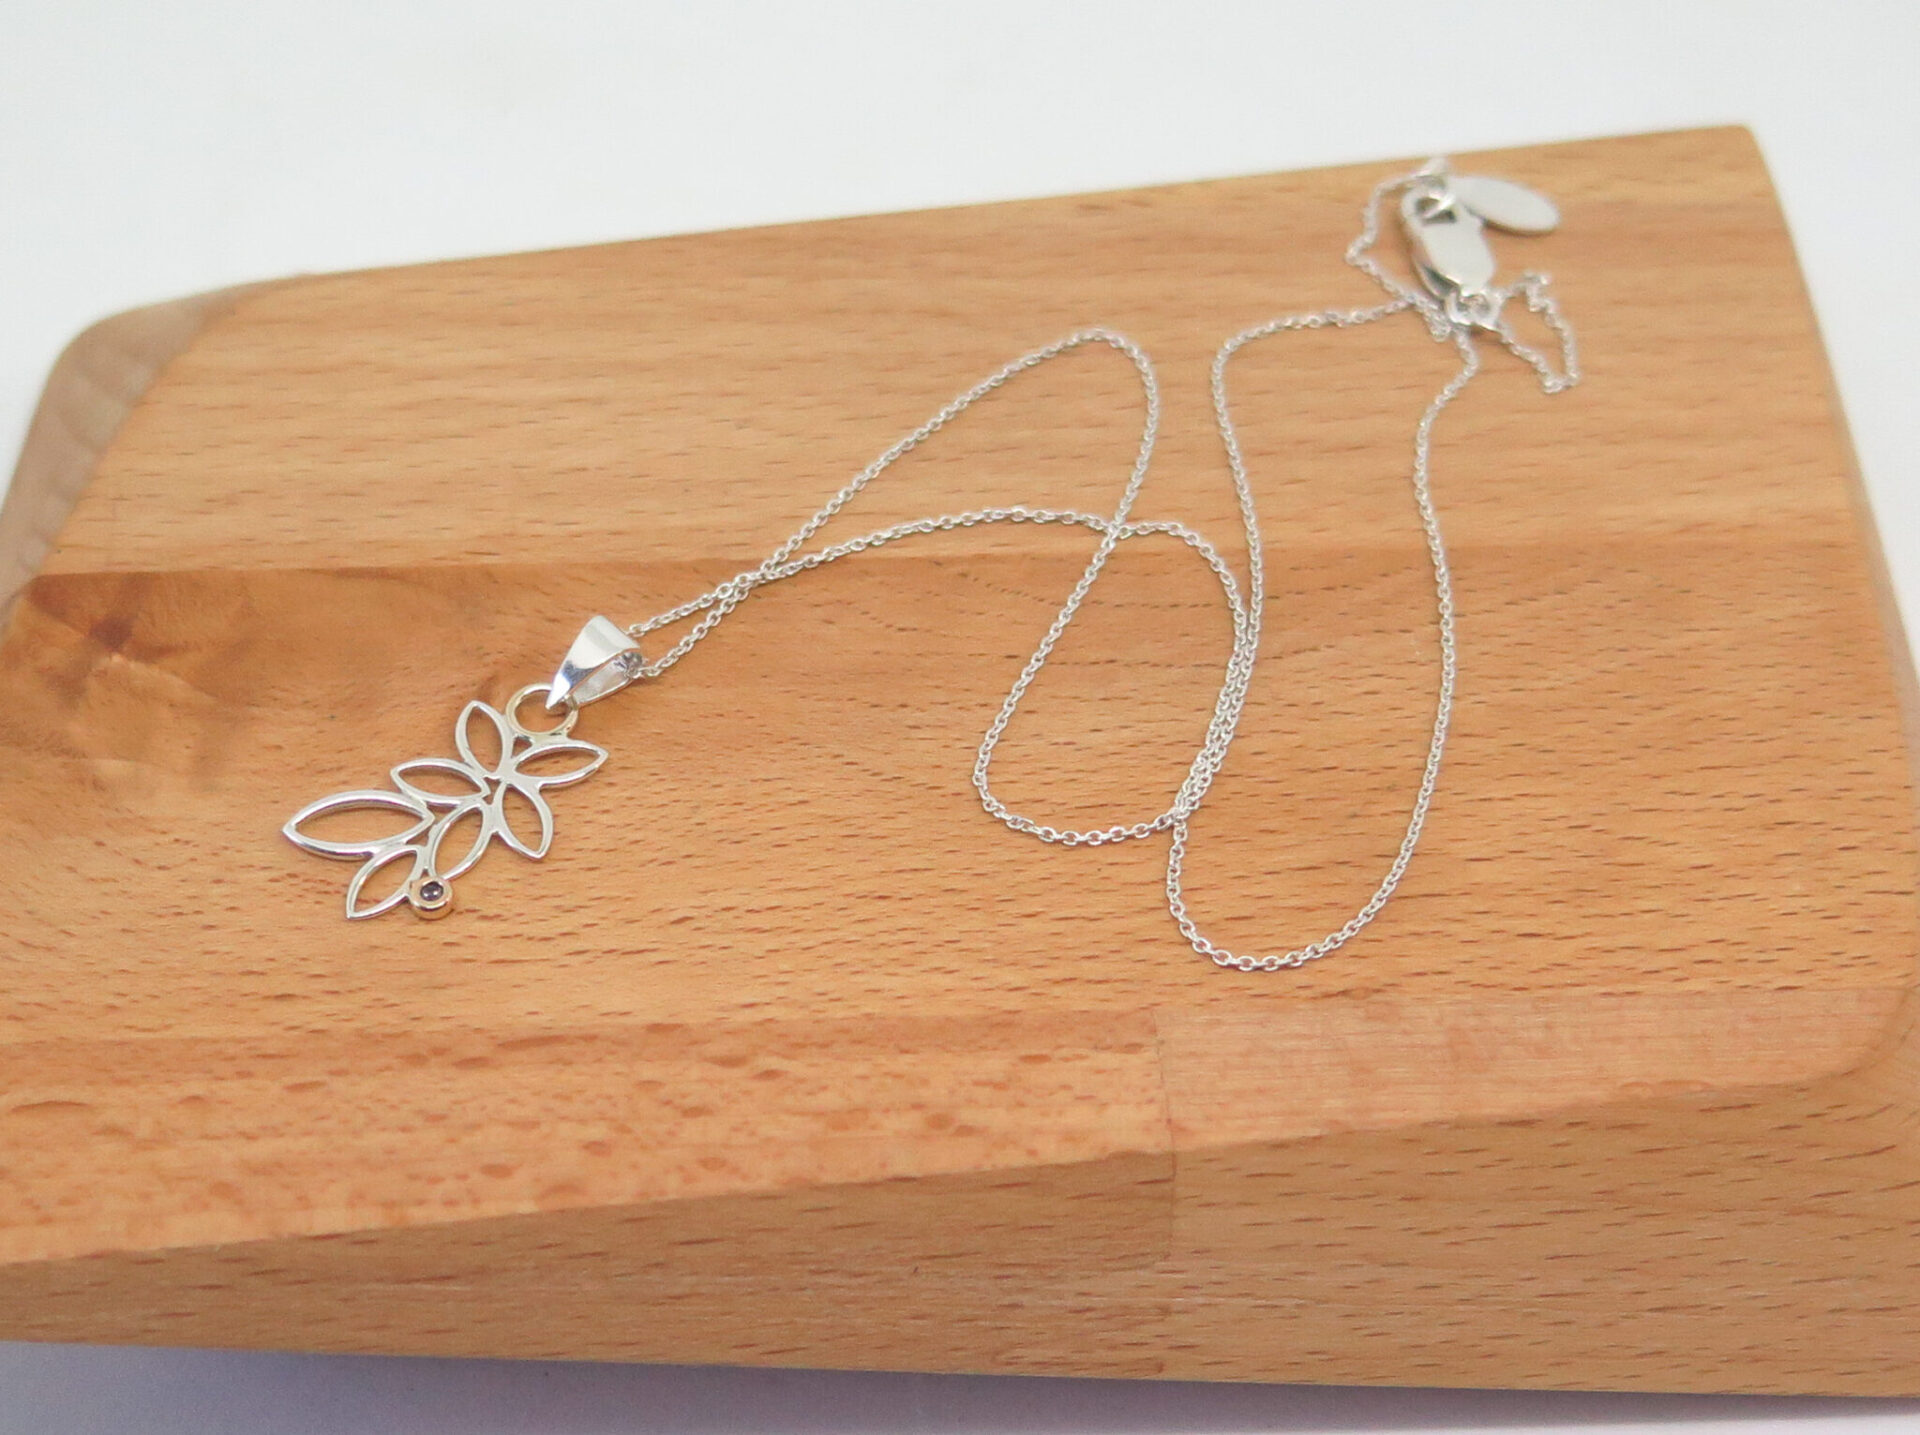 autumn-leaf-sterling-silver-necklace-by-Germano Arts